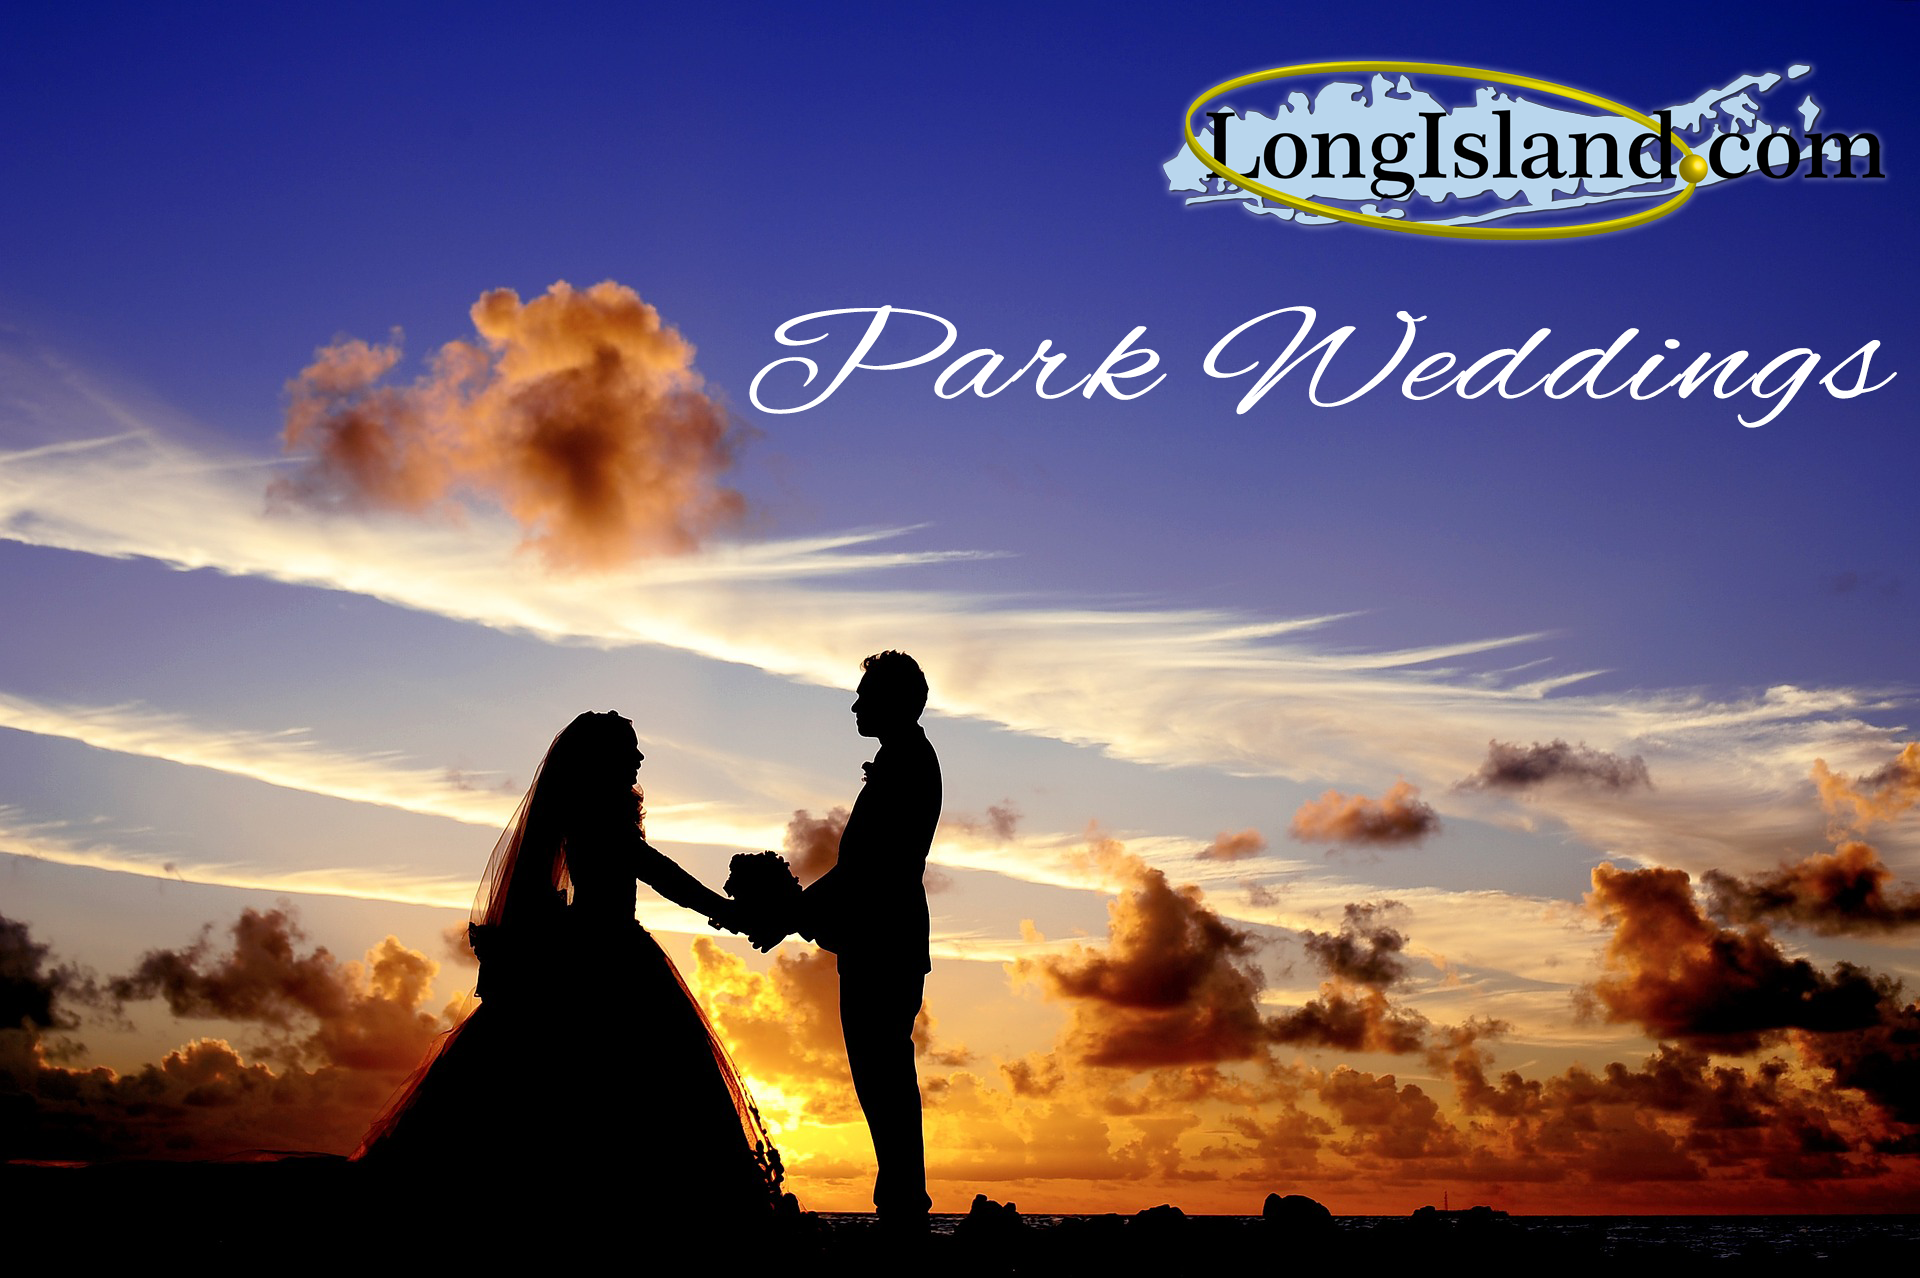 Long island park weddings get married in a long island park long island is the perfect place to plan a dream wedding there are many parks to choose from when it comes to planning a local outdoor wedding junglespirit Images